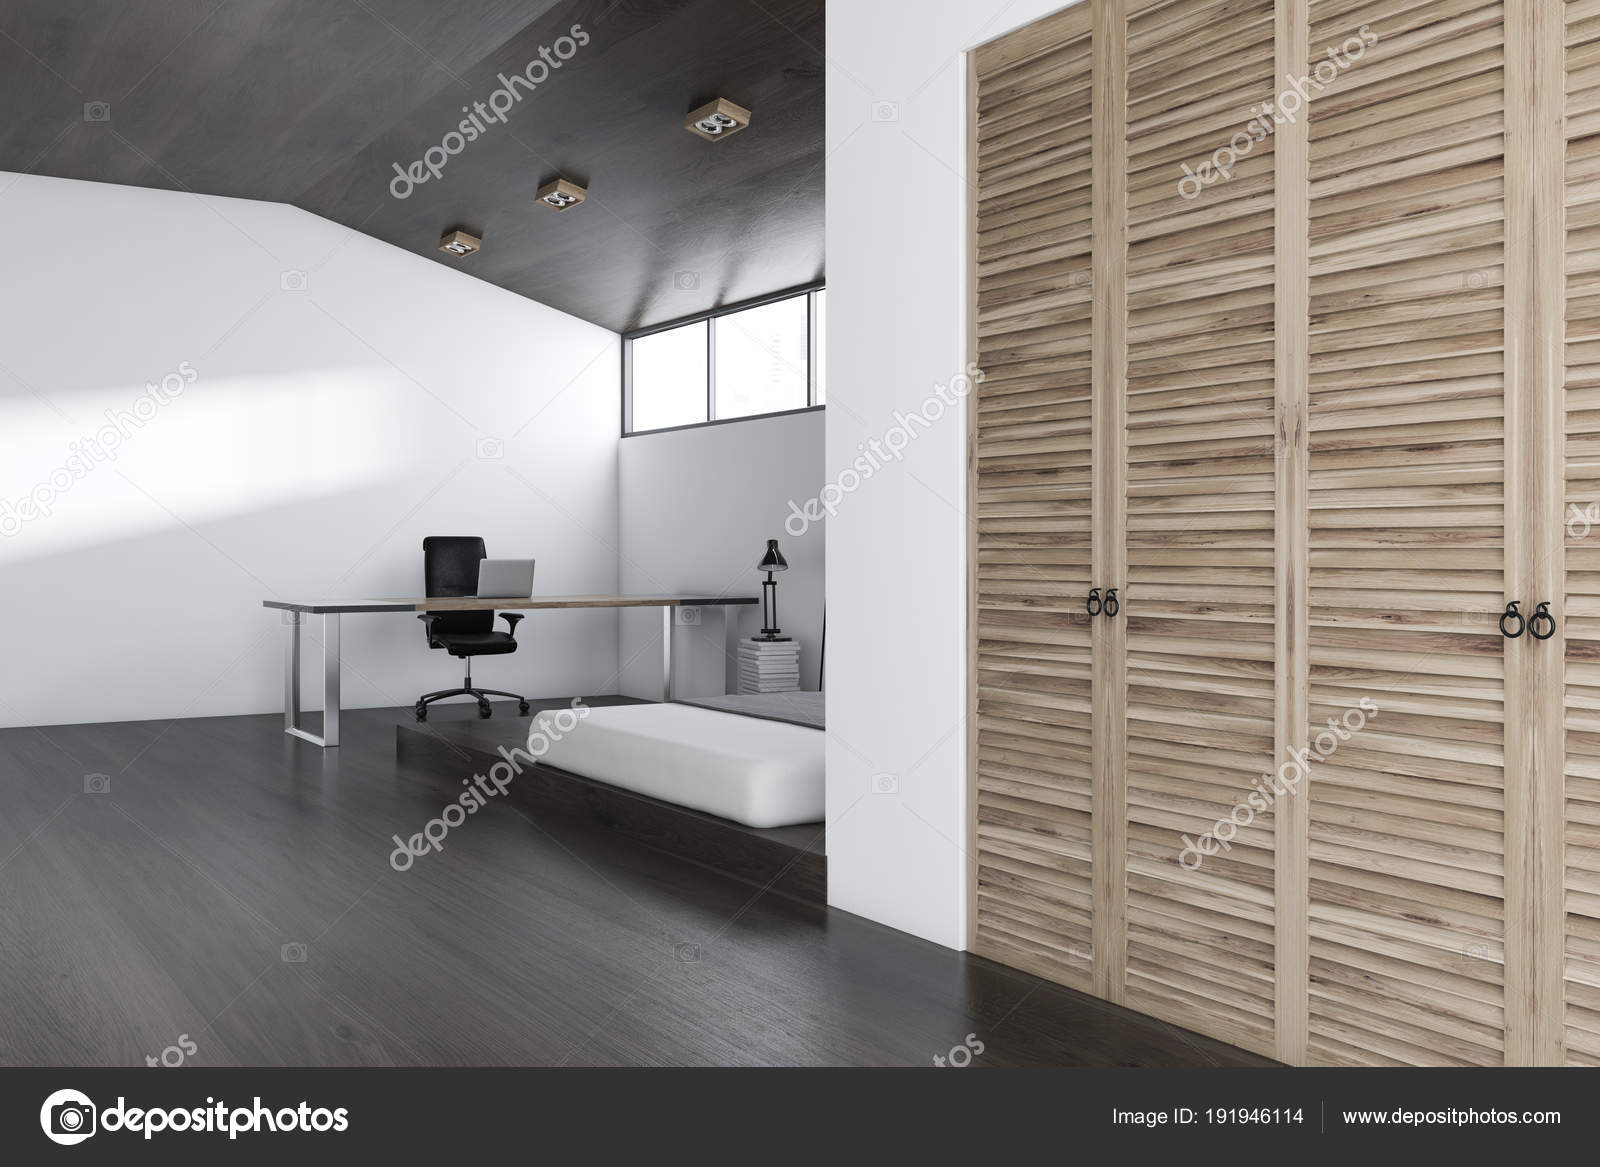 White Wall Bedroom And Home Office Interior With A Concrete Floor, A King  Size Bed And A Wardrobe. A Computer Desk. 3d Rendering Mock Up U2014 Photo By  ...